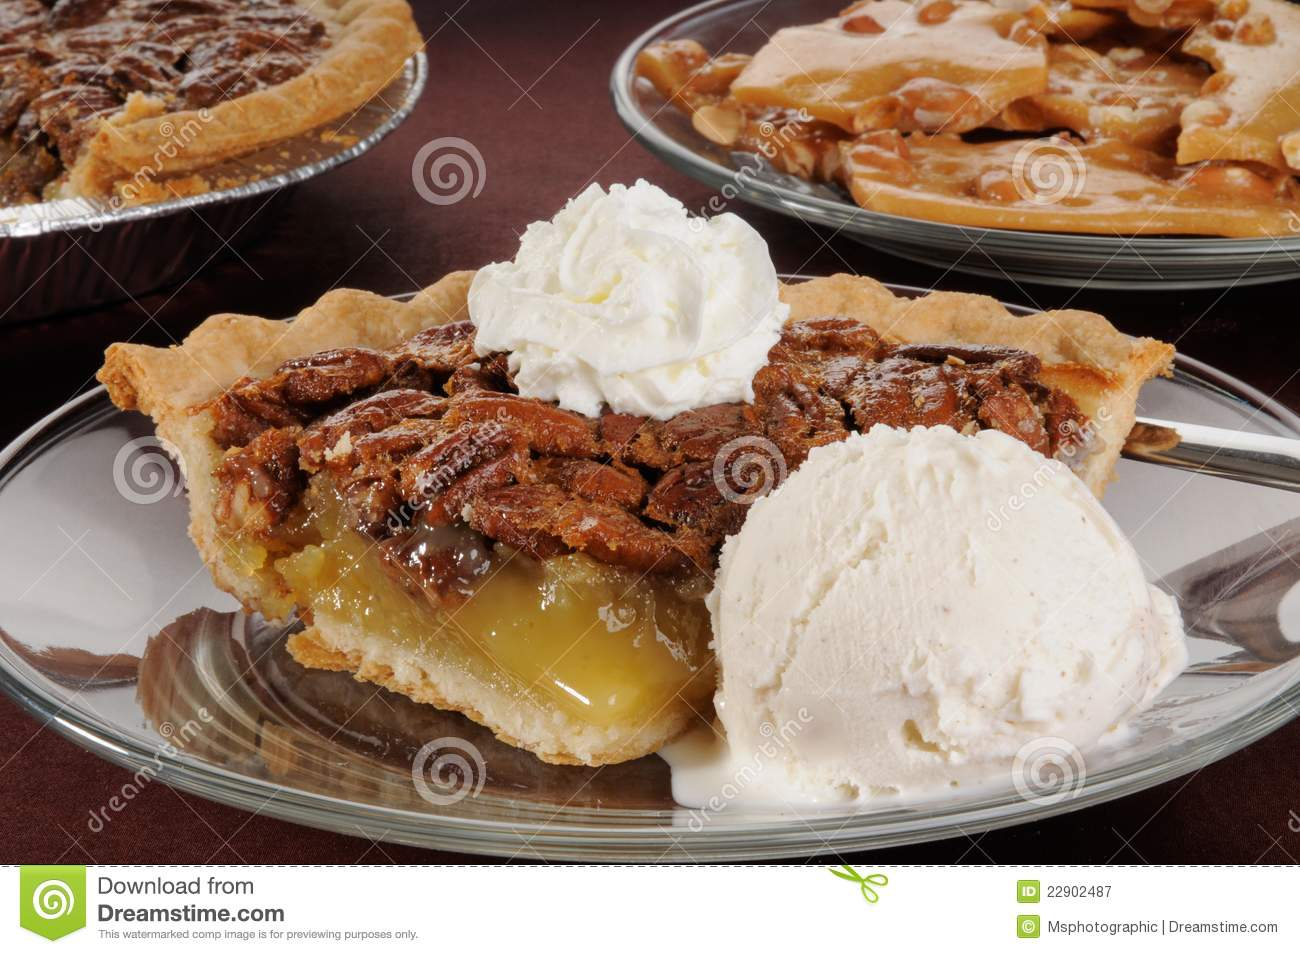 pecan-pie-ice-cream-22902487.jpg